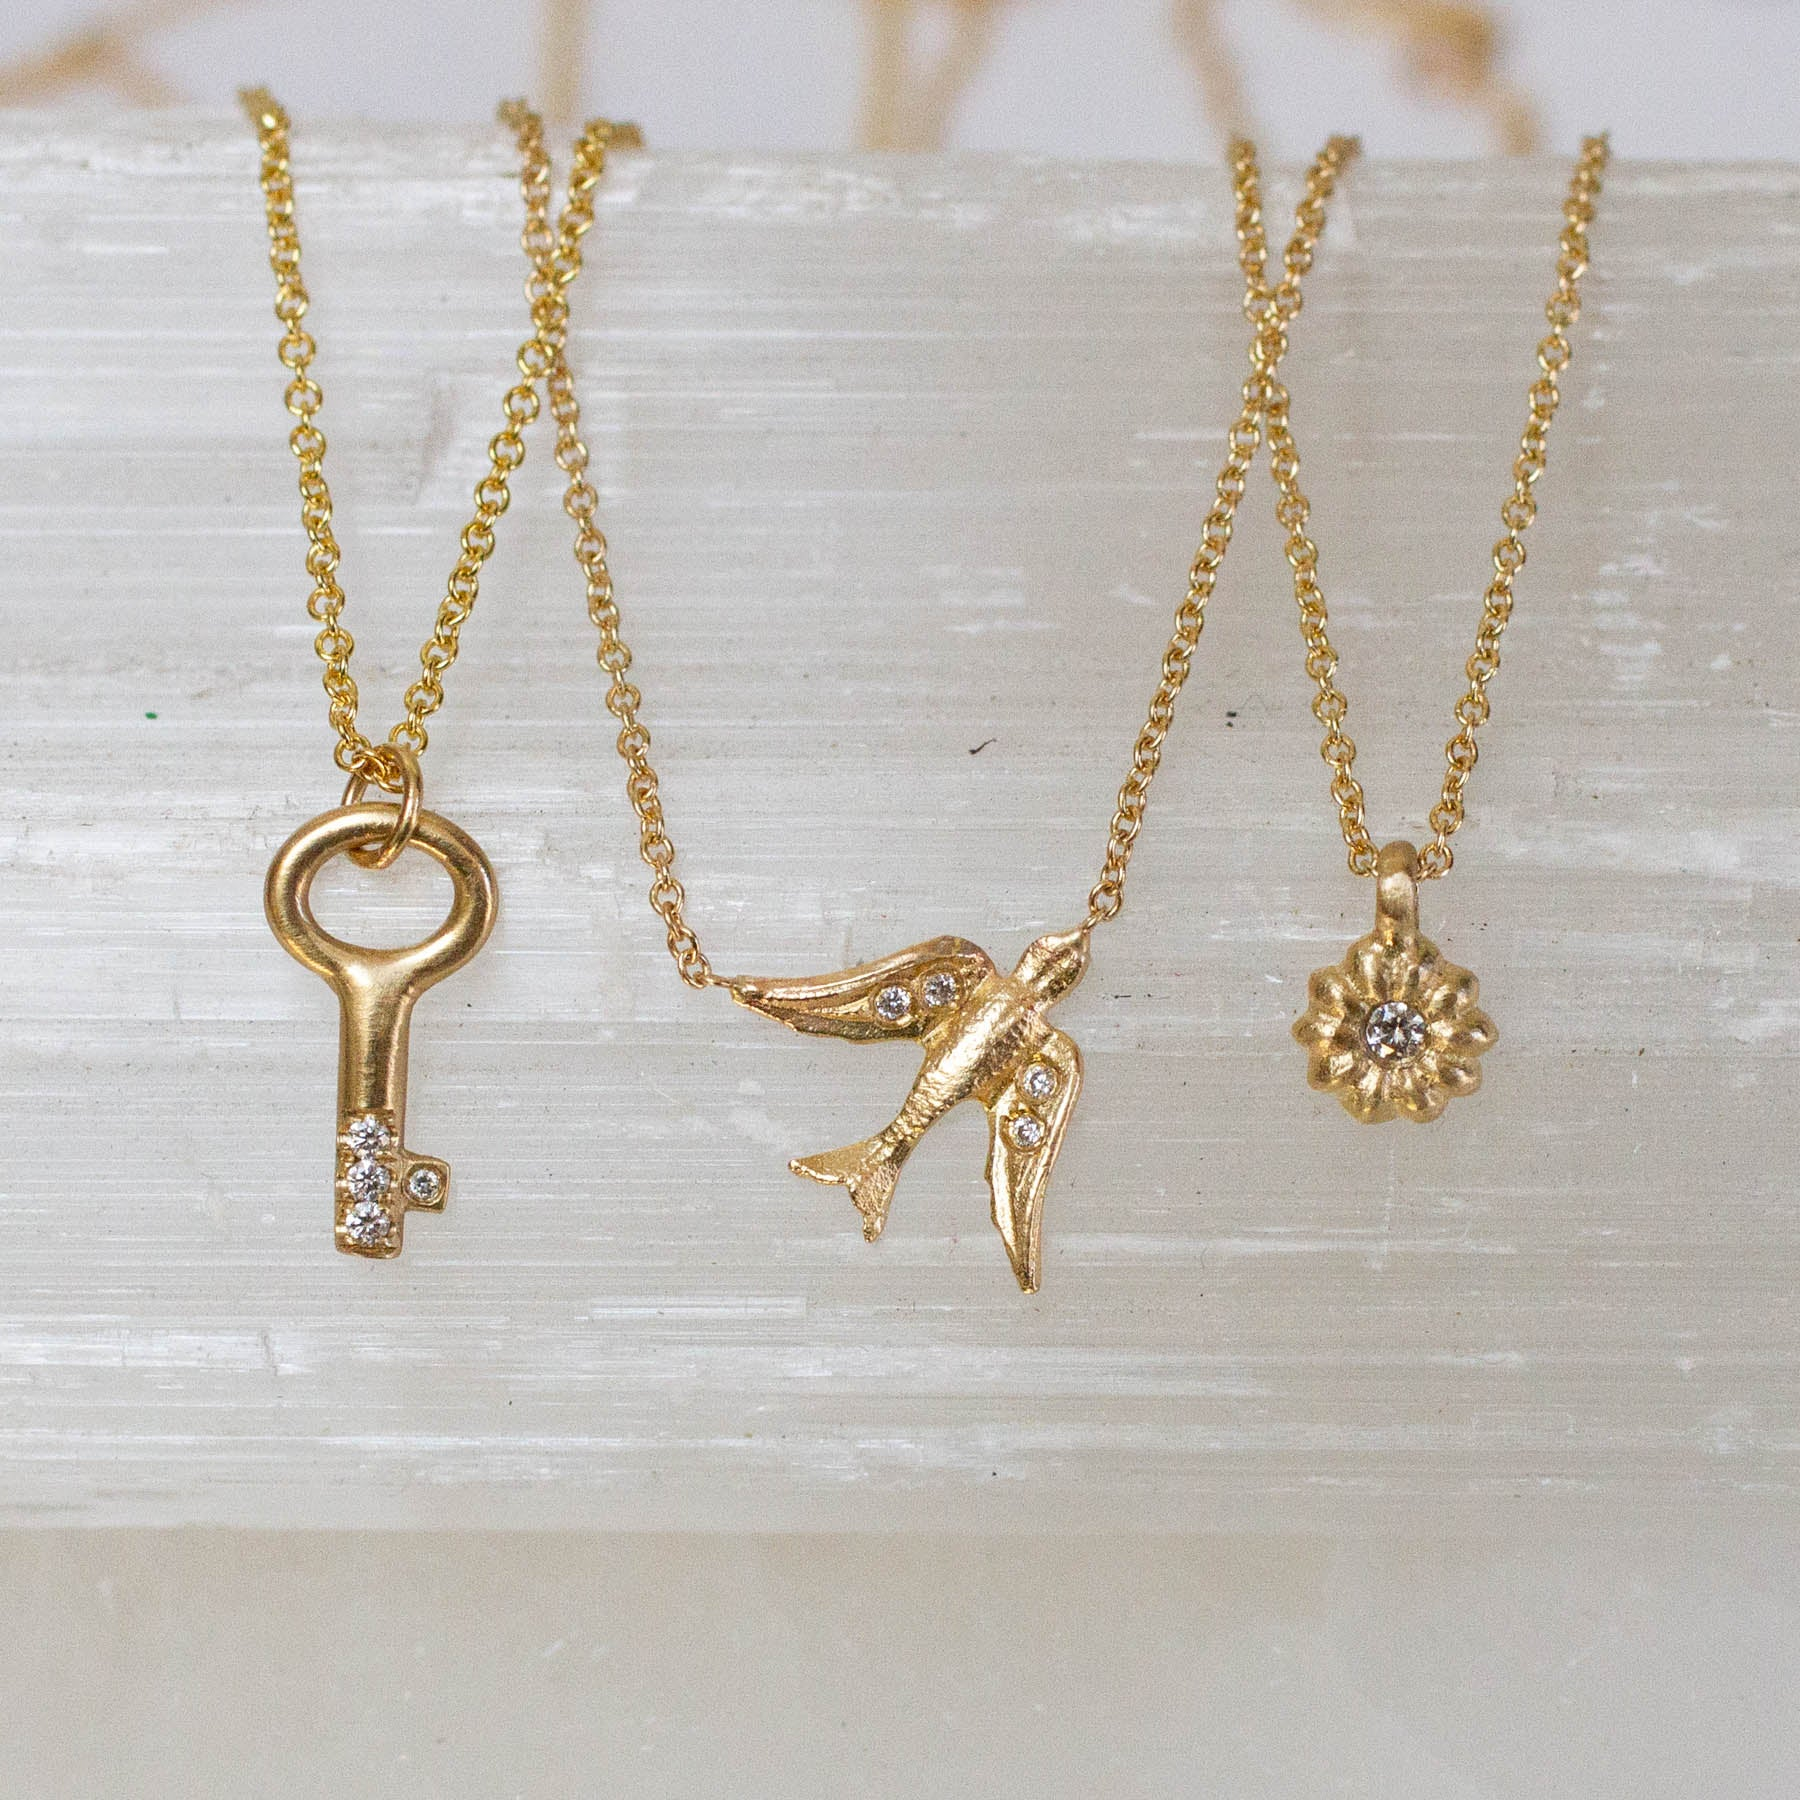 14K Diamond Key Necklace